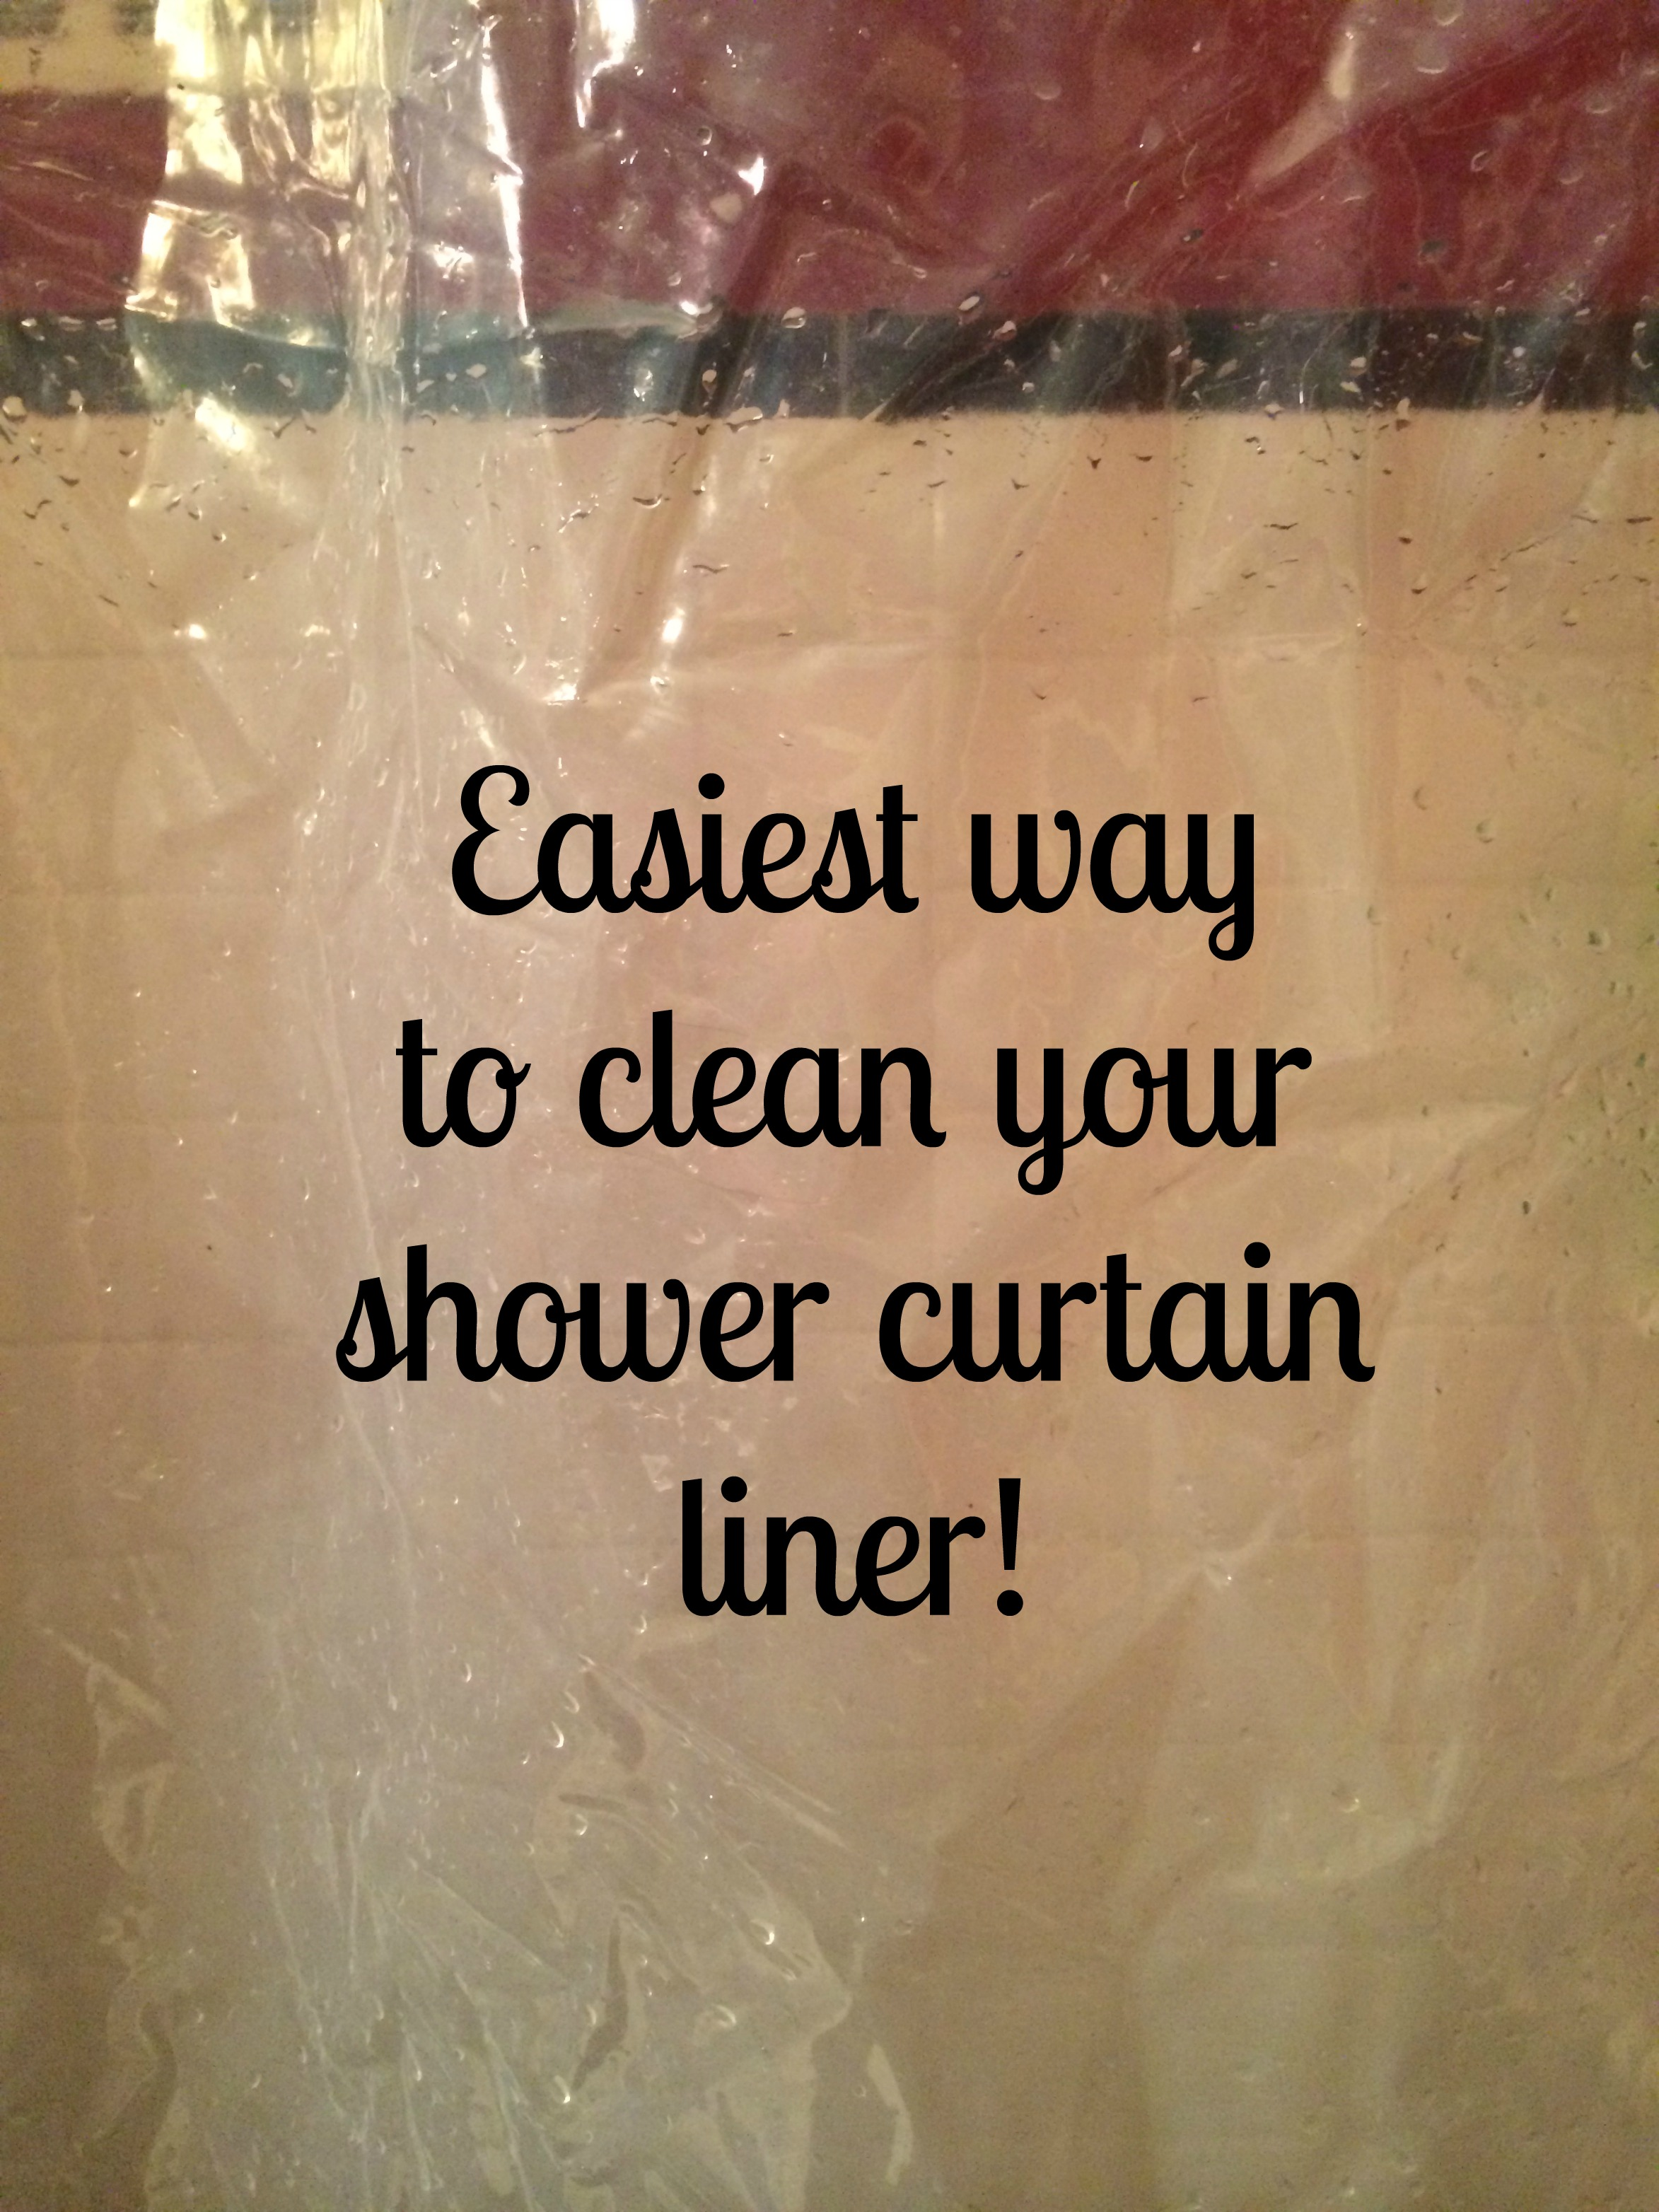 Extra Wide Shower Curtain Liner | 90 Inch Shower Curtain Liner | Shower Curtain Liner